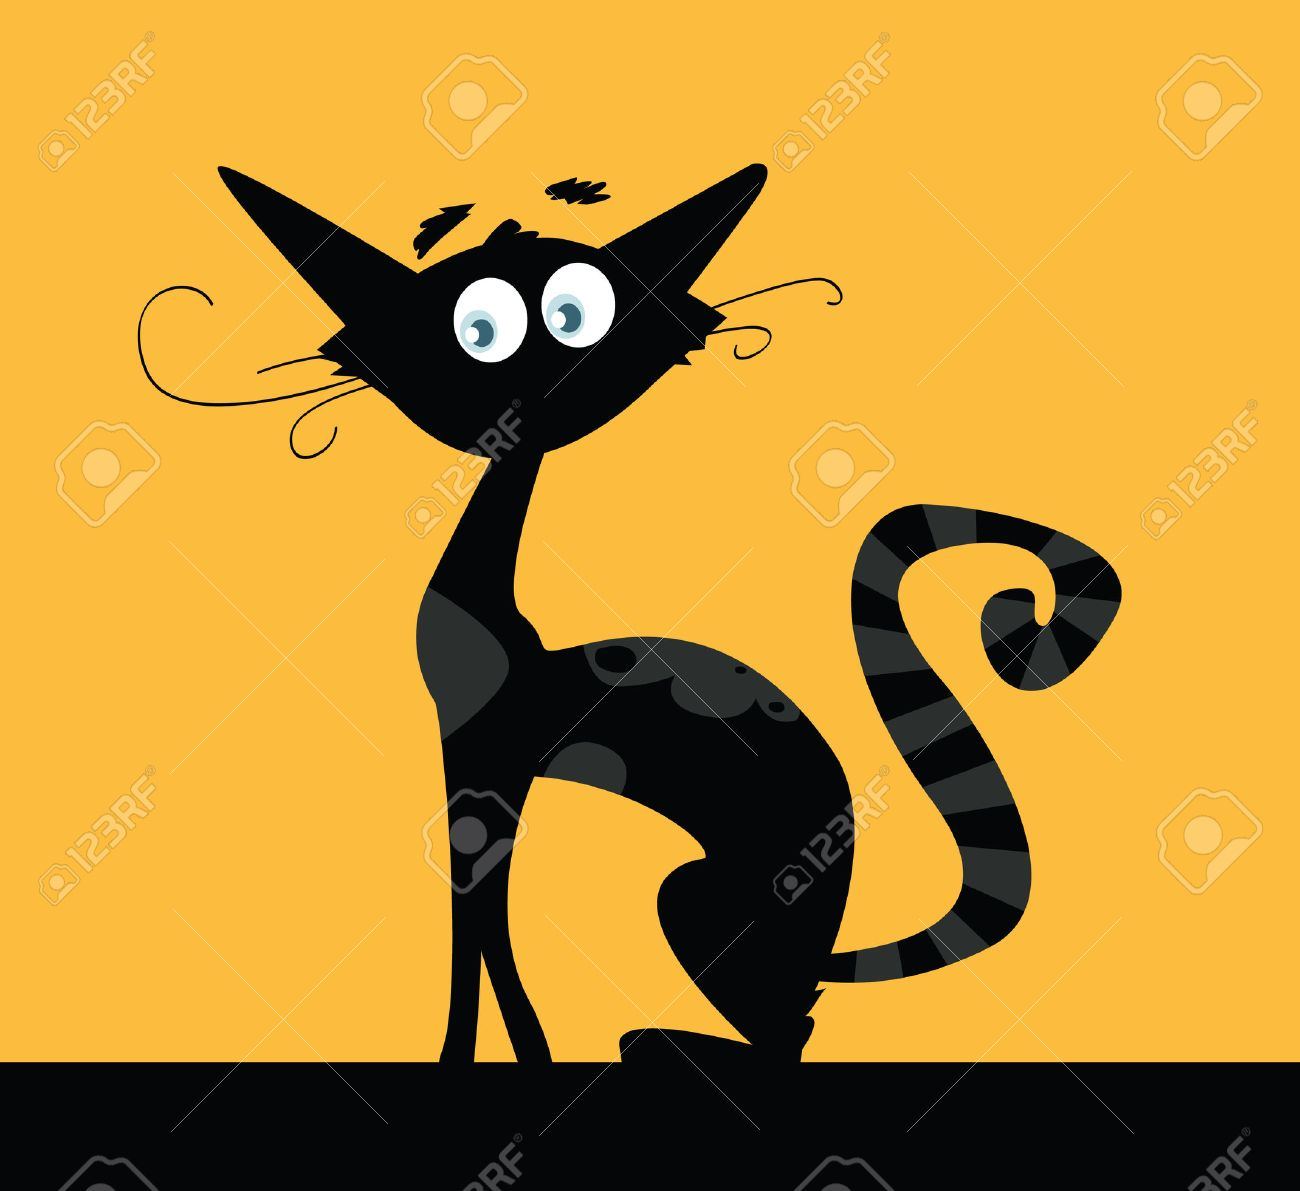 146 276 cat stock vector illustration and royalty free cat clipart